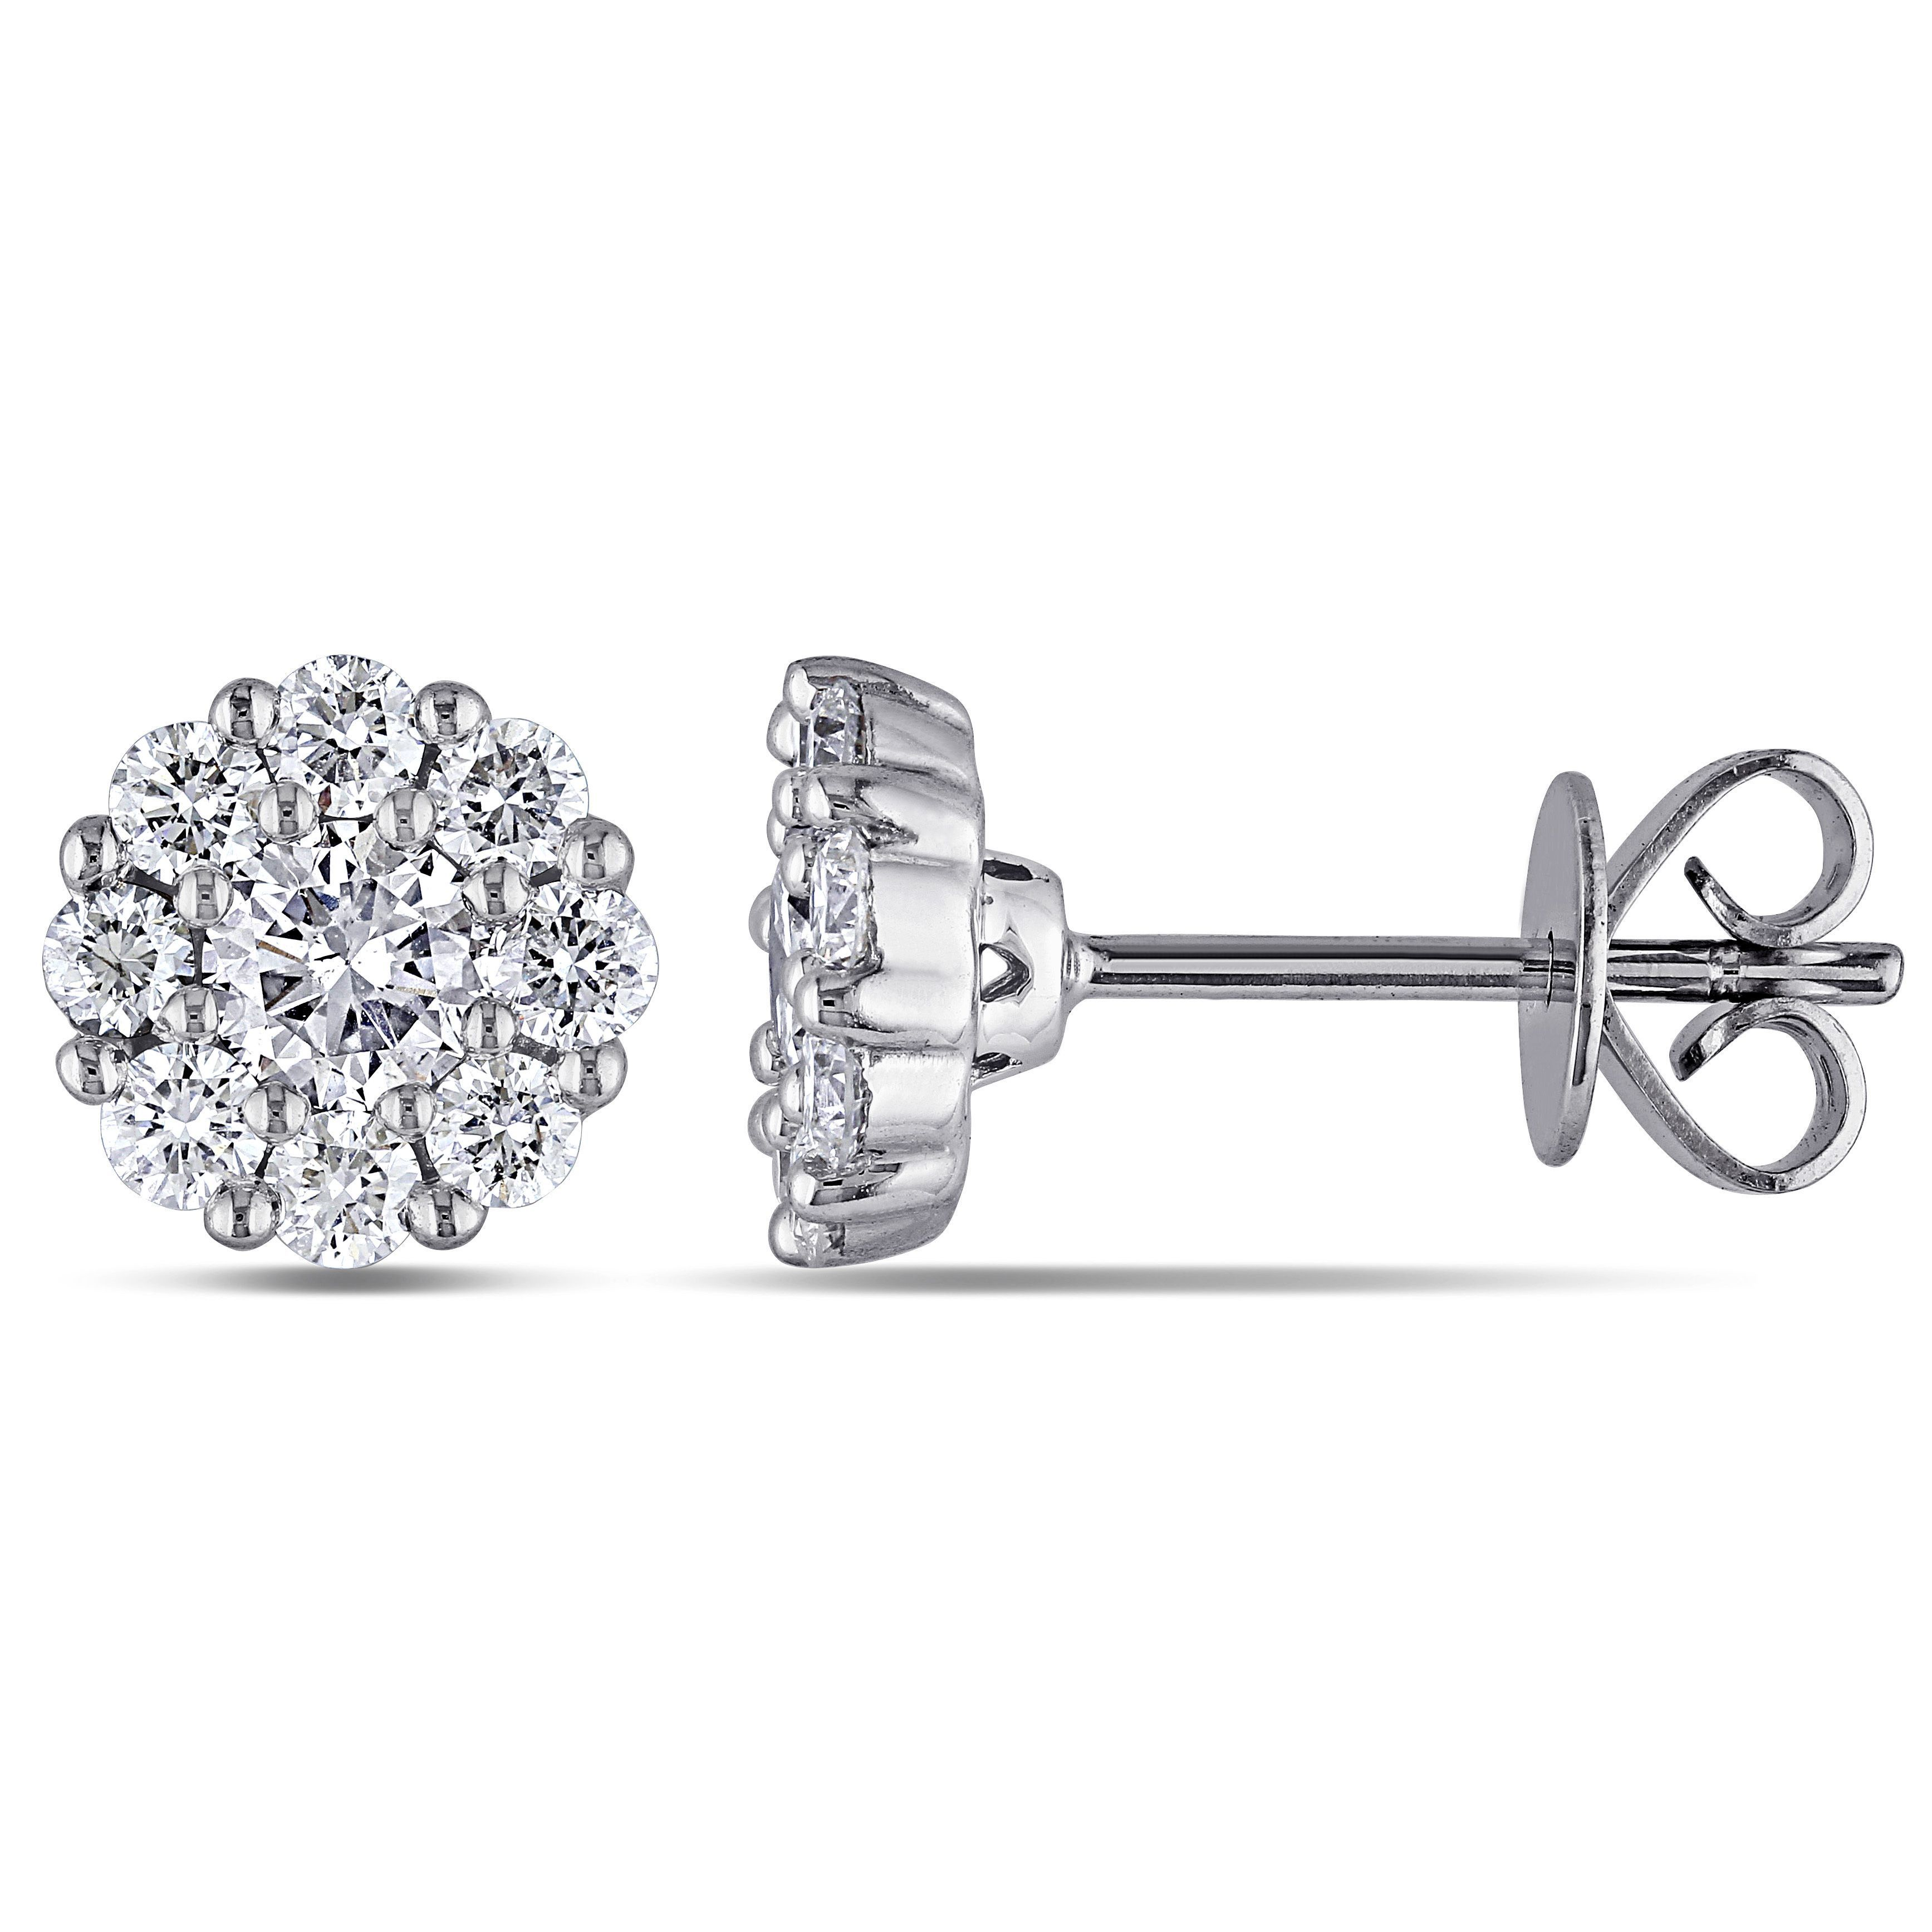 Miadora Signature Collection 14k Gold 1ct TDW Diamond Cluster Halo Stud Earrings